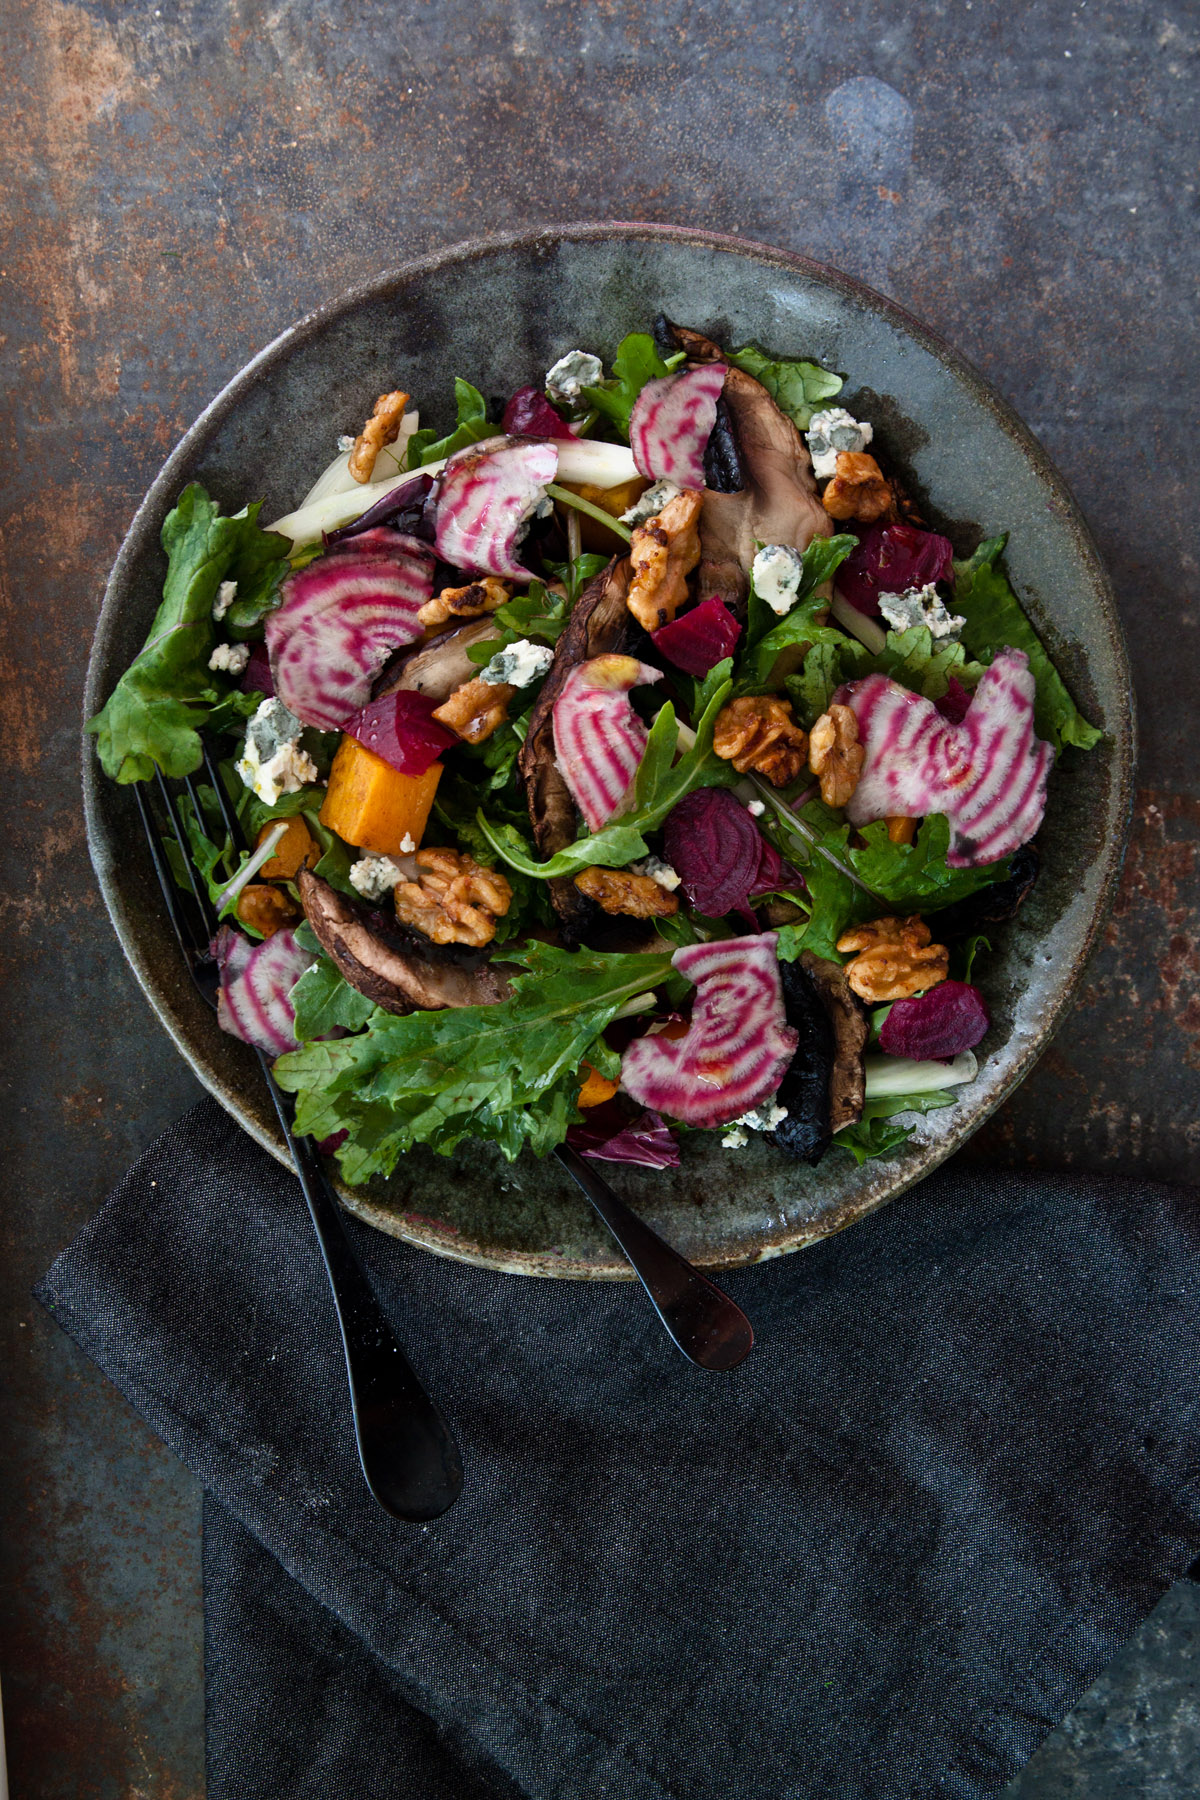 Autumn Salad with Shiitake Mushroom Dressing